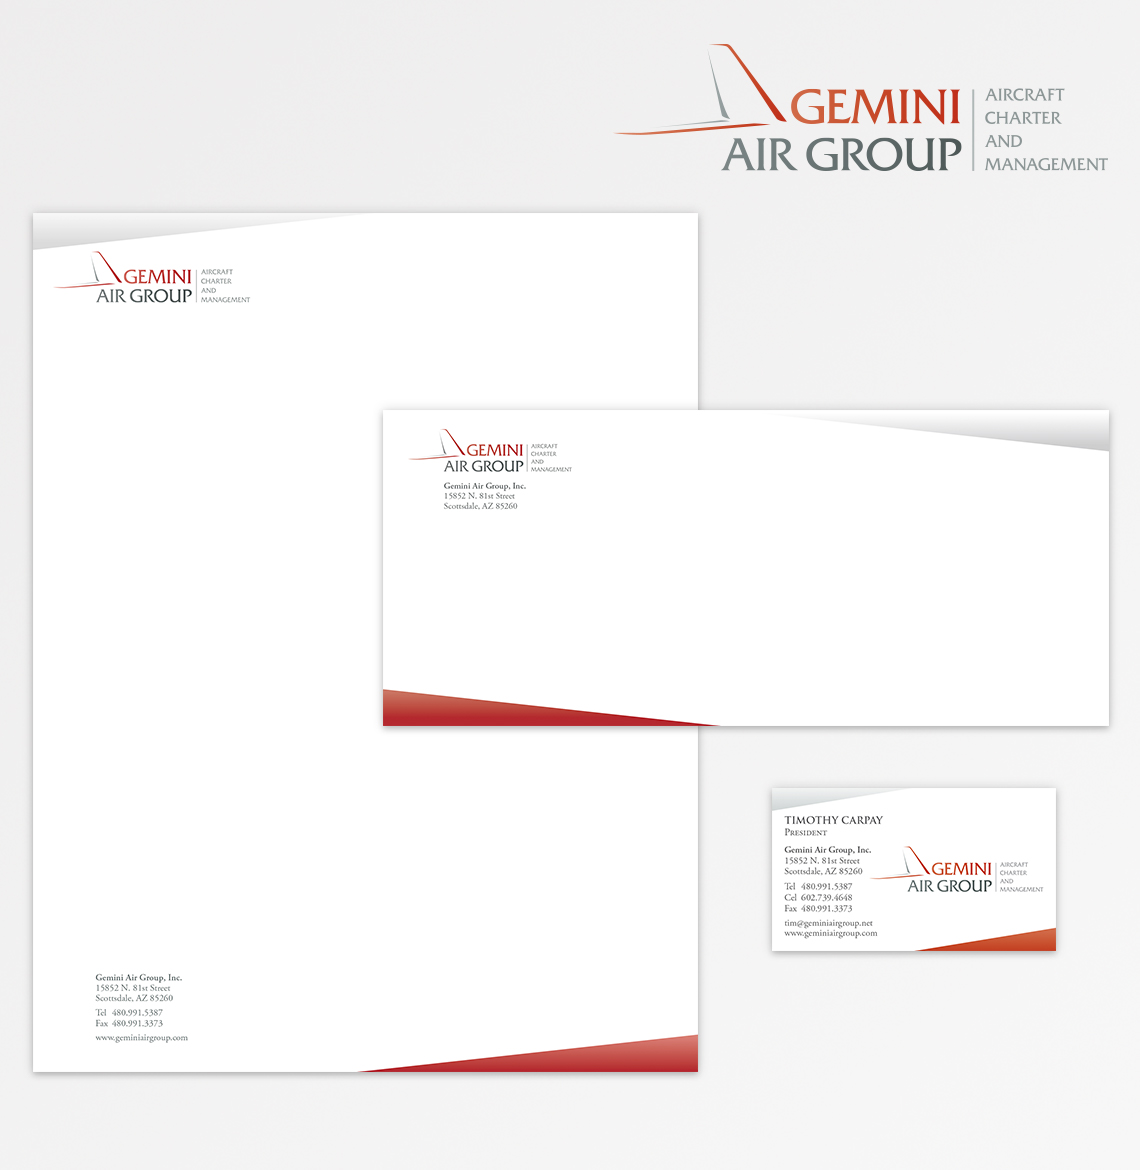 Gemini Air Group Identity Package